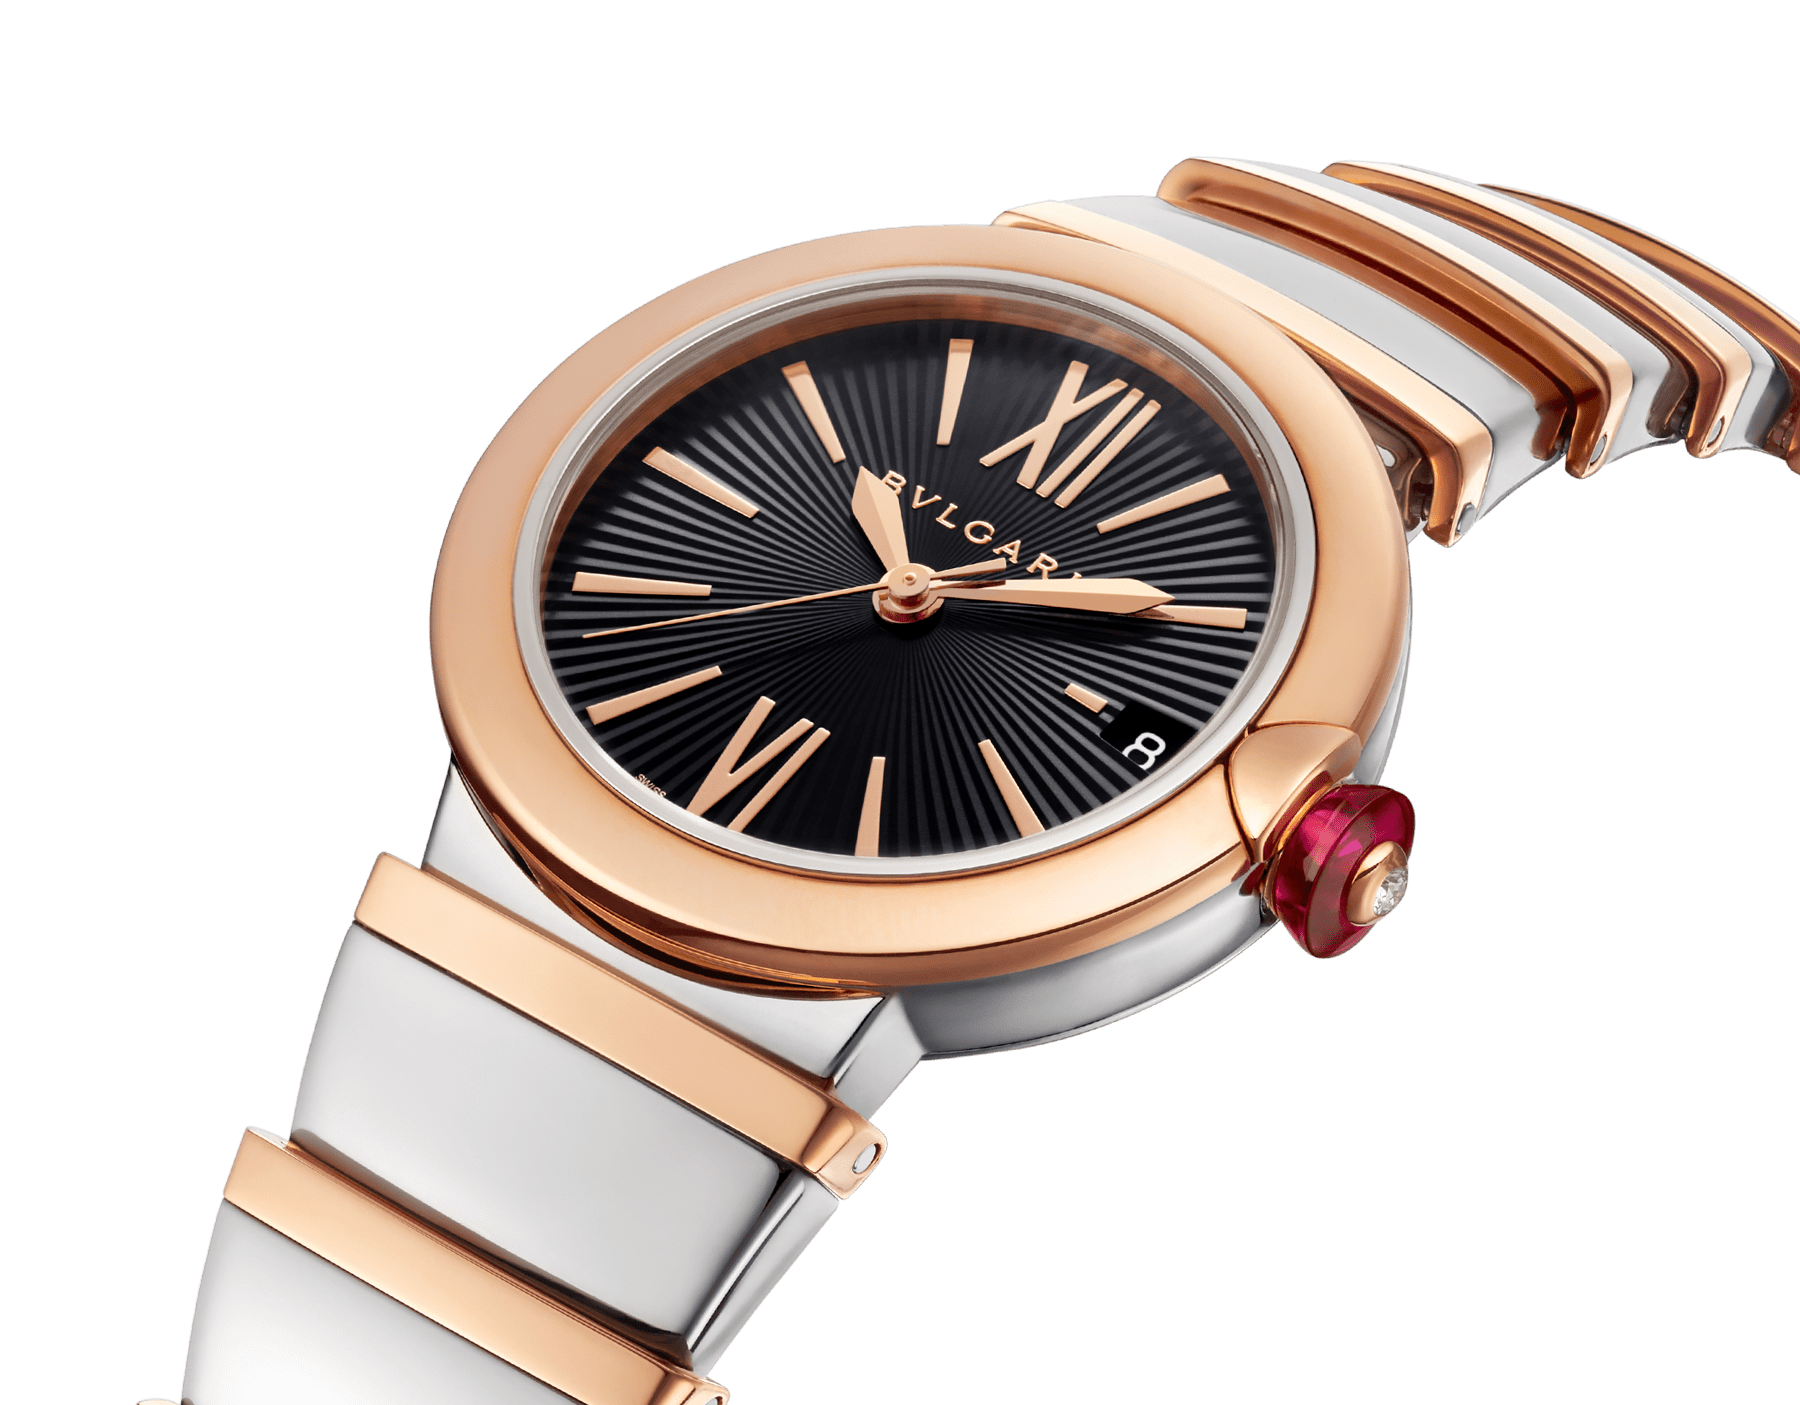 LVCEA watch in 18kt rose gold and stainless steel case and bracelet, with black opaline dial. 102192 image 2